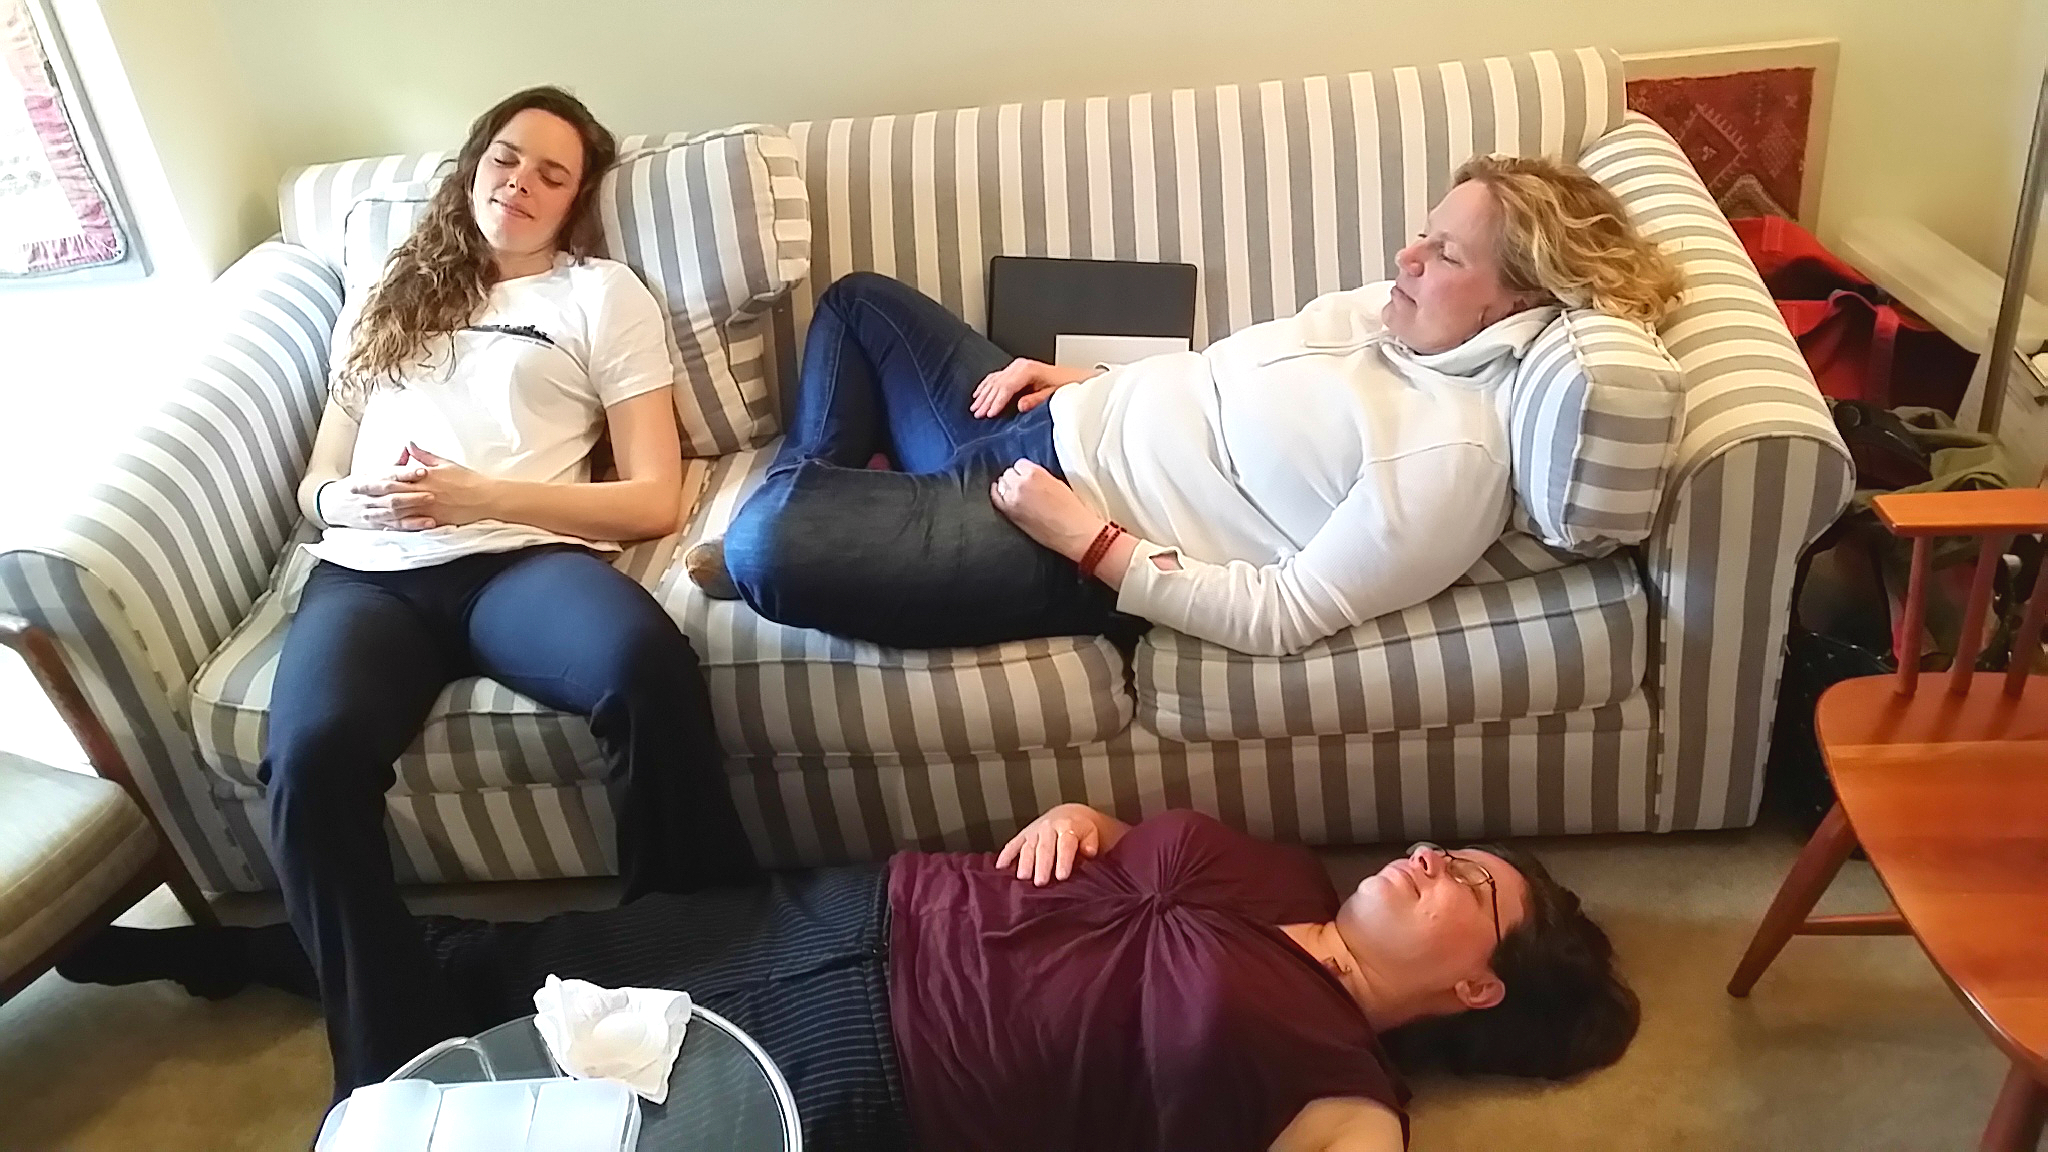 This image shows our staff demonstrating relaxation techniques. Please join us!